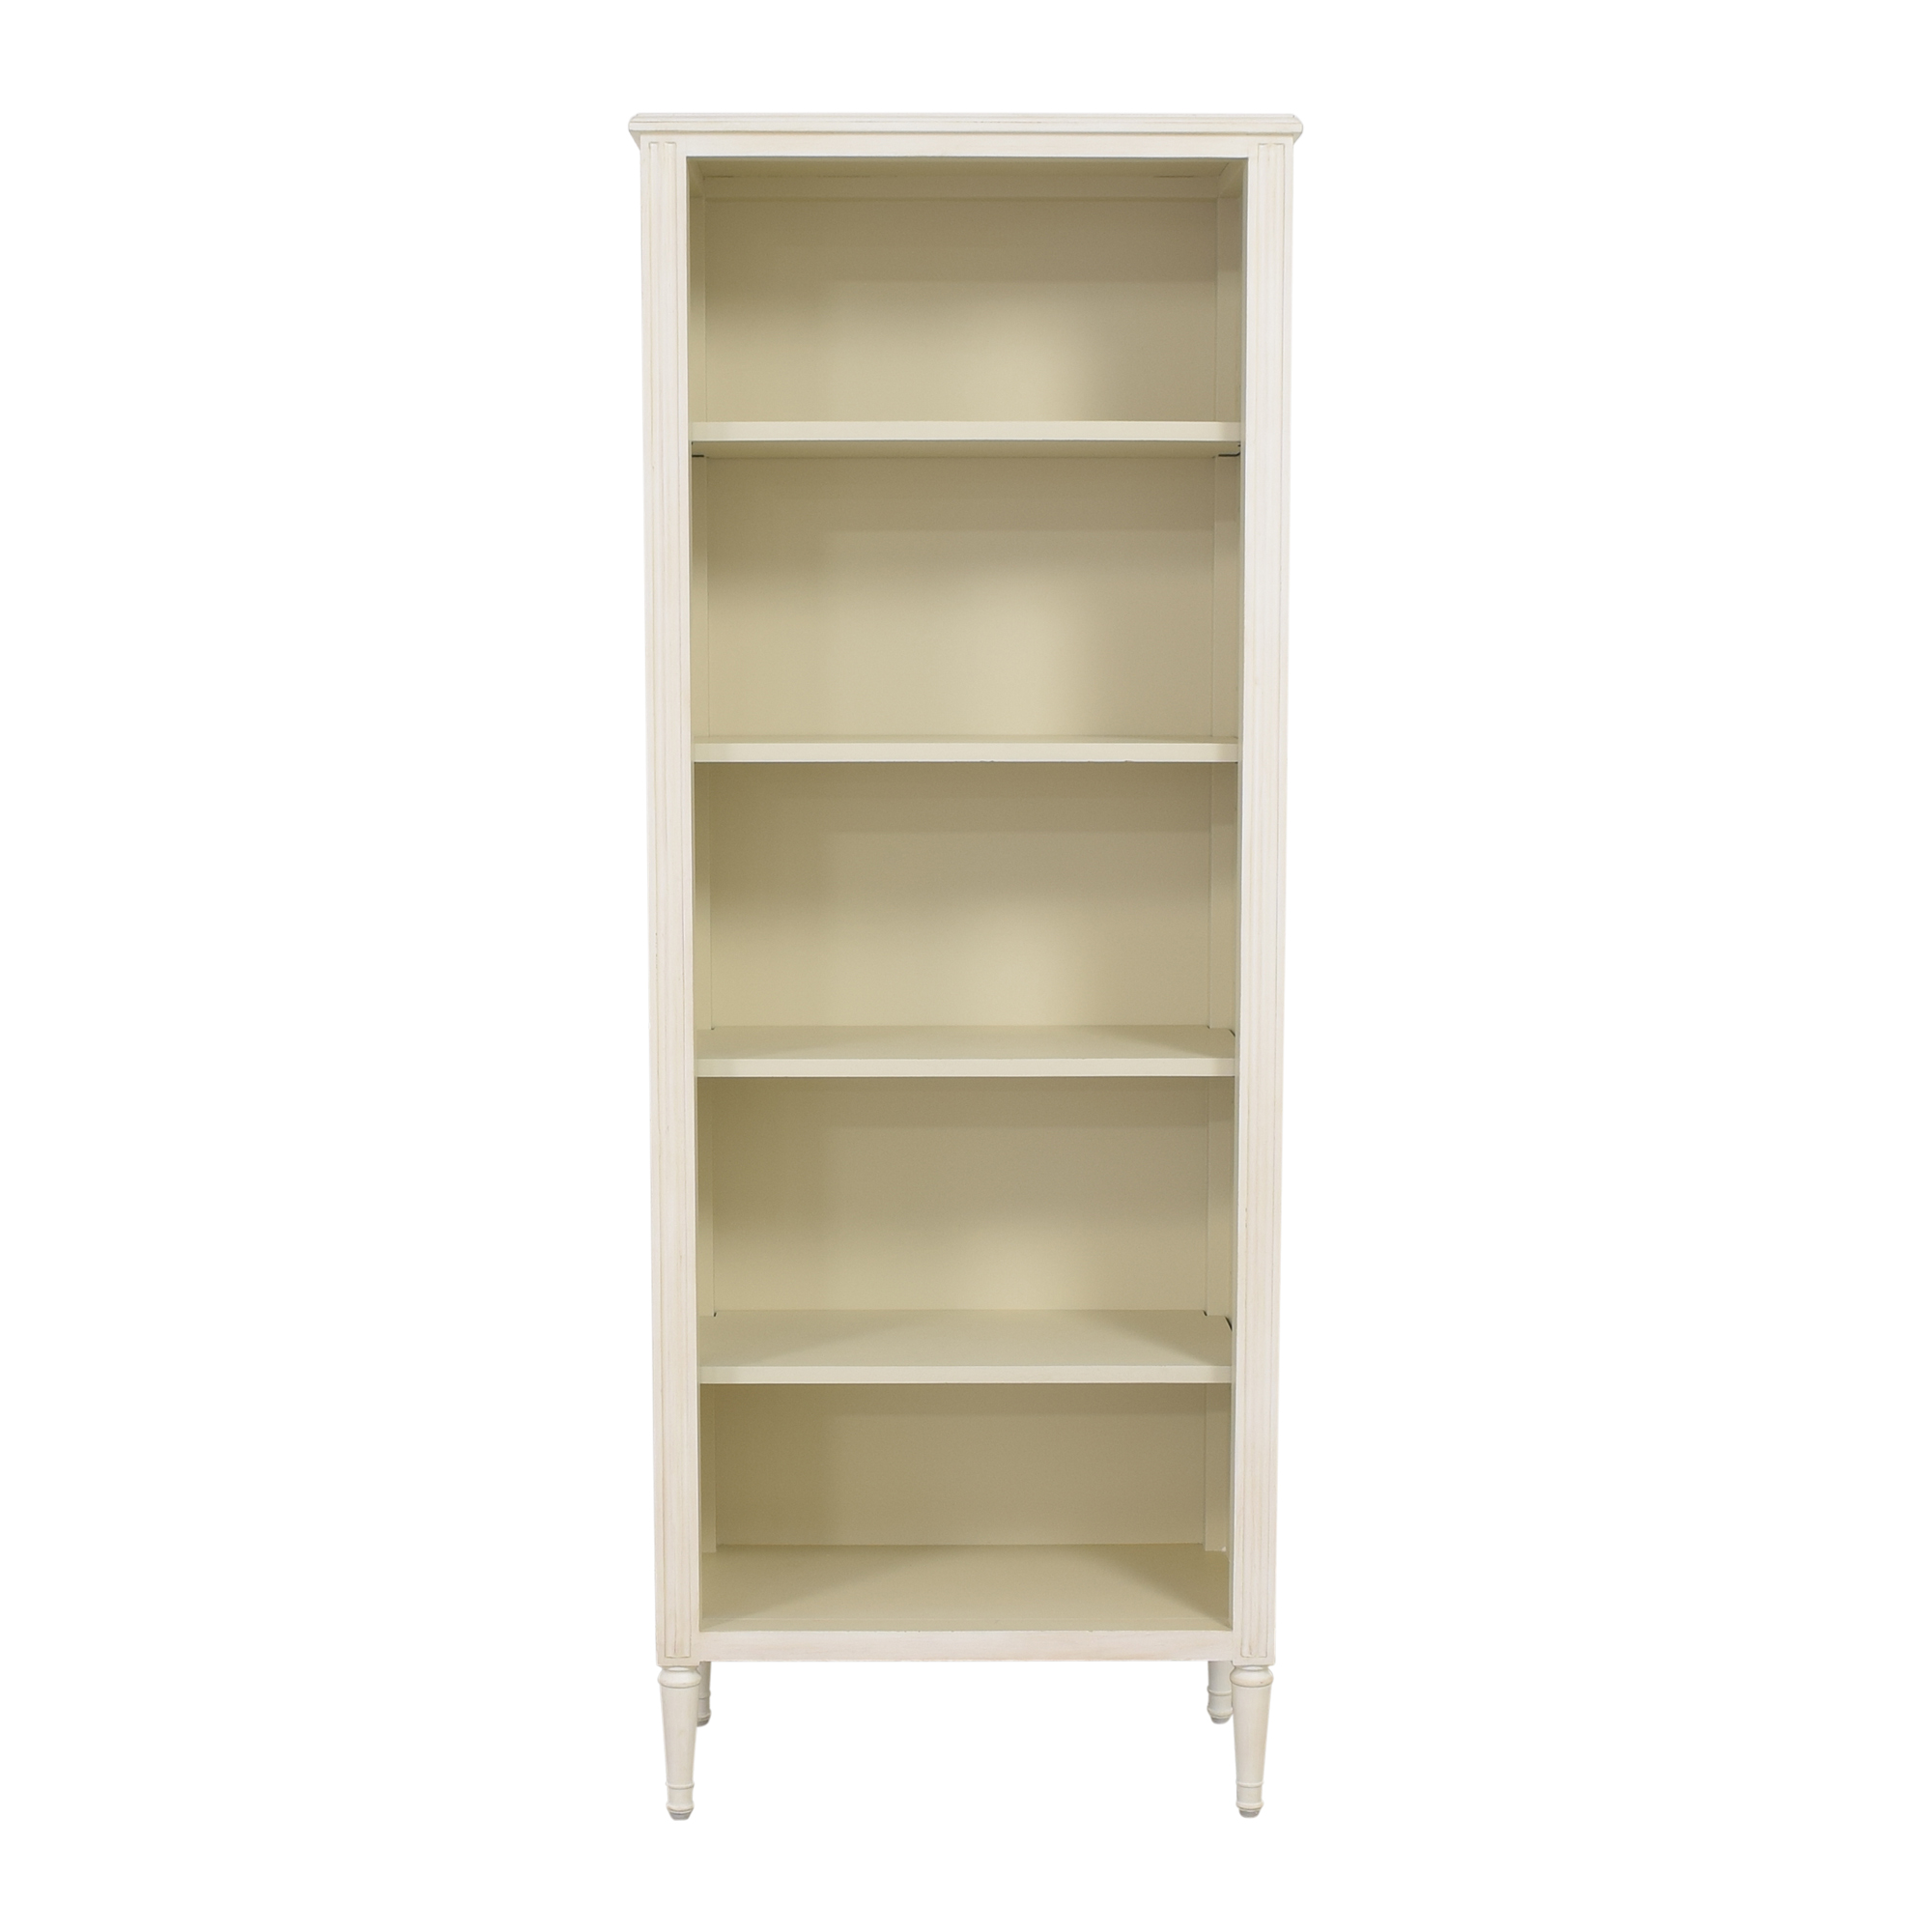 RH Baby & Child RH Baby & Child Marcelle Tall Bookcase used